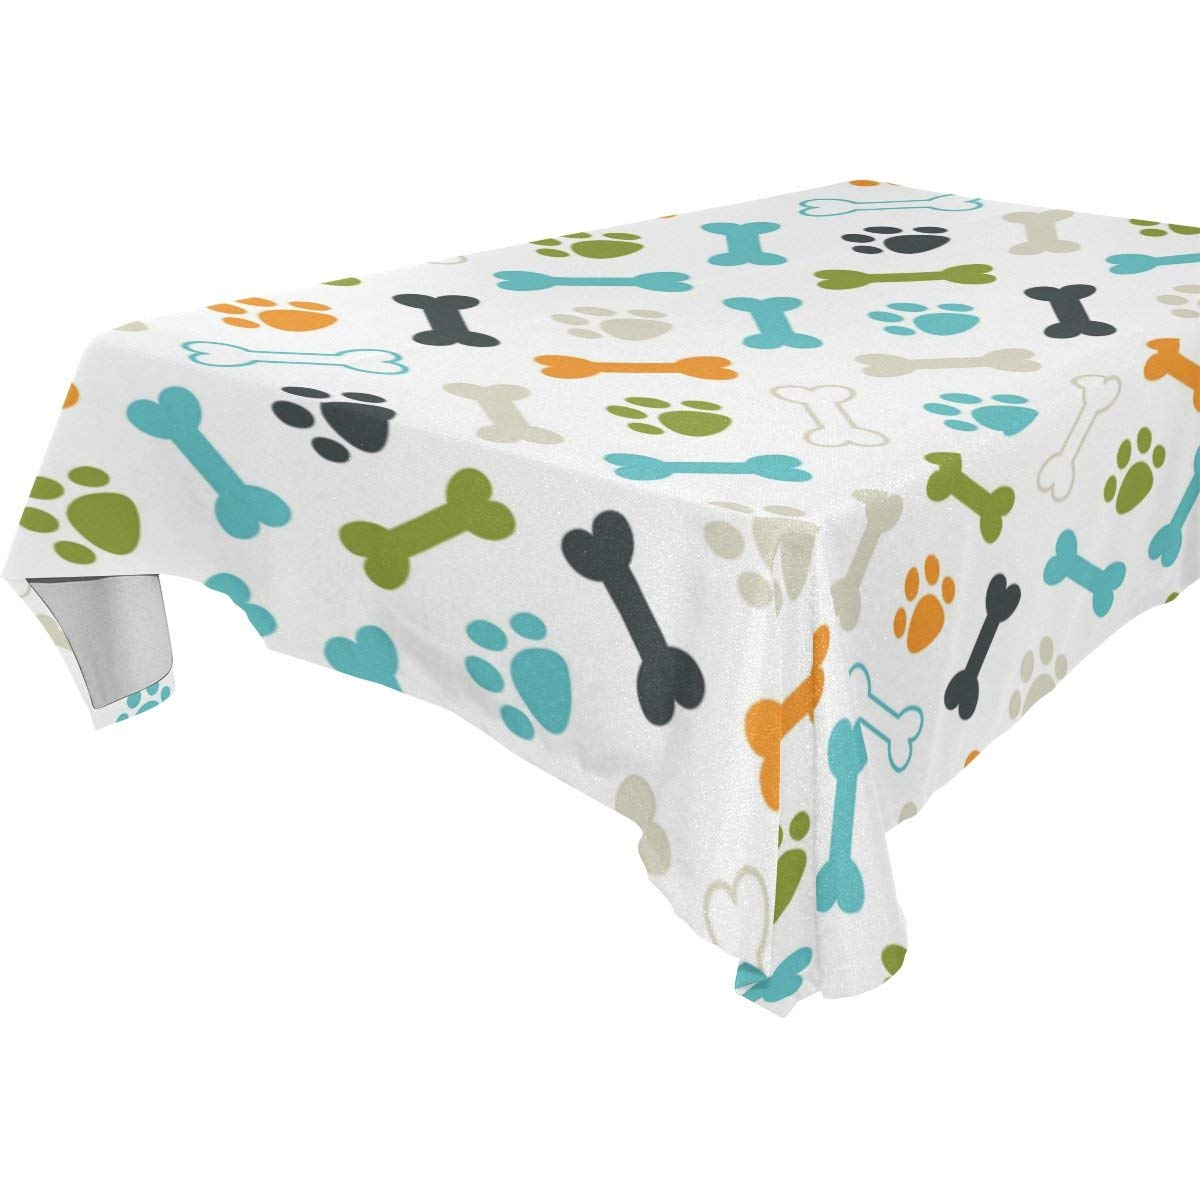 WOZO Rectangular Colorful Puppy Dog Paw Print Footprint Tablecloth Table Cloth Cover for Home Decor Dinner Kitchen Party Picnic Wedding Halloween Christmas 60x108 inch